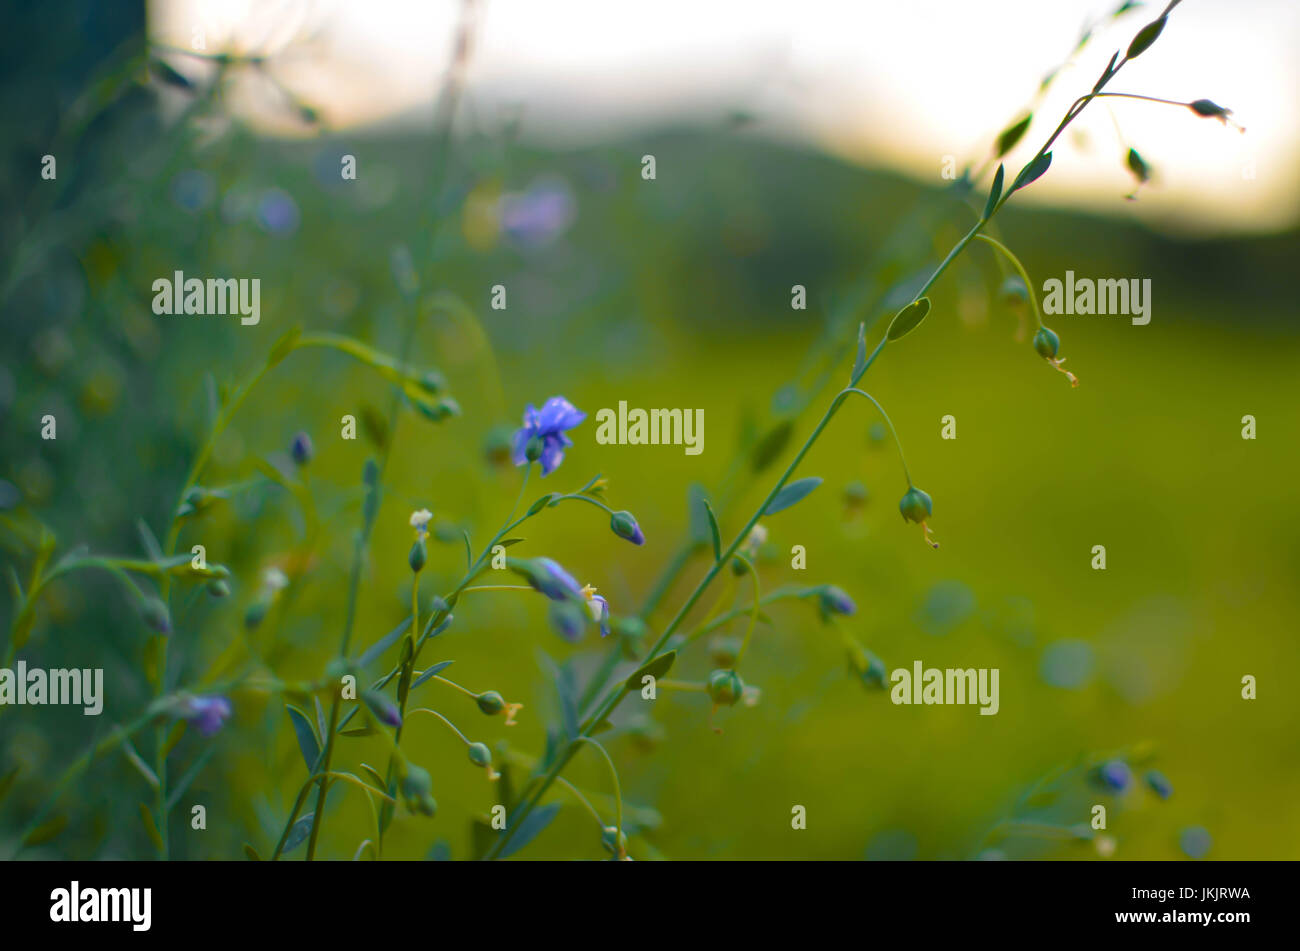 Common Flax Linum Usatissimu Flowers Flowers And Buds Seeds Are